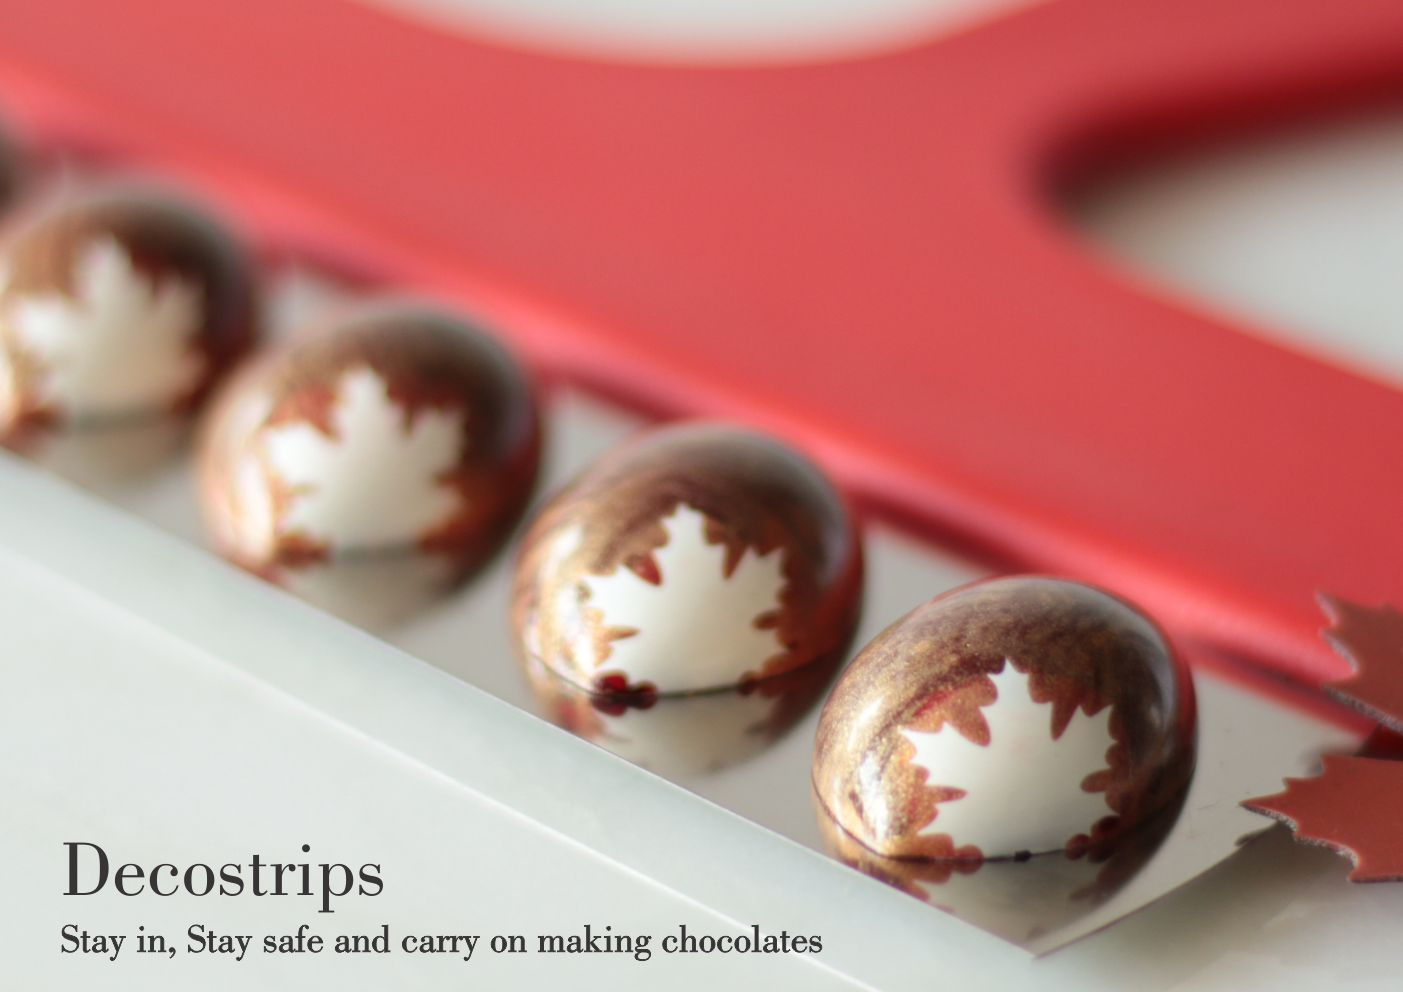 Decostrips custom chocolate bonbons